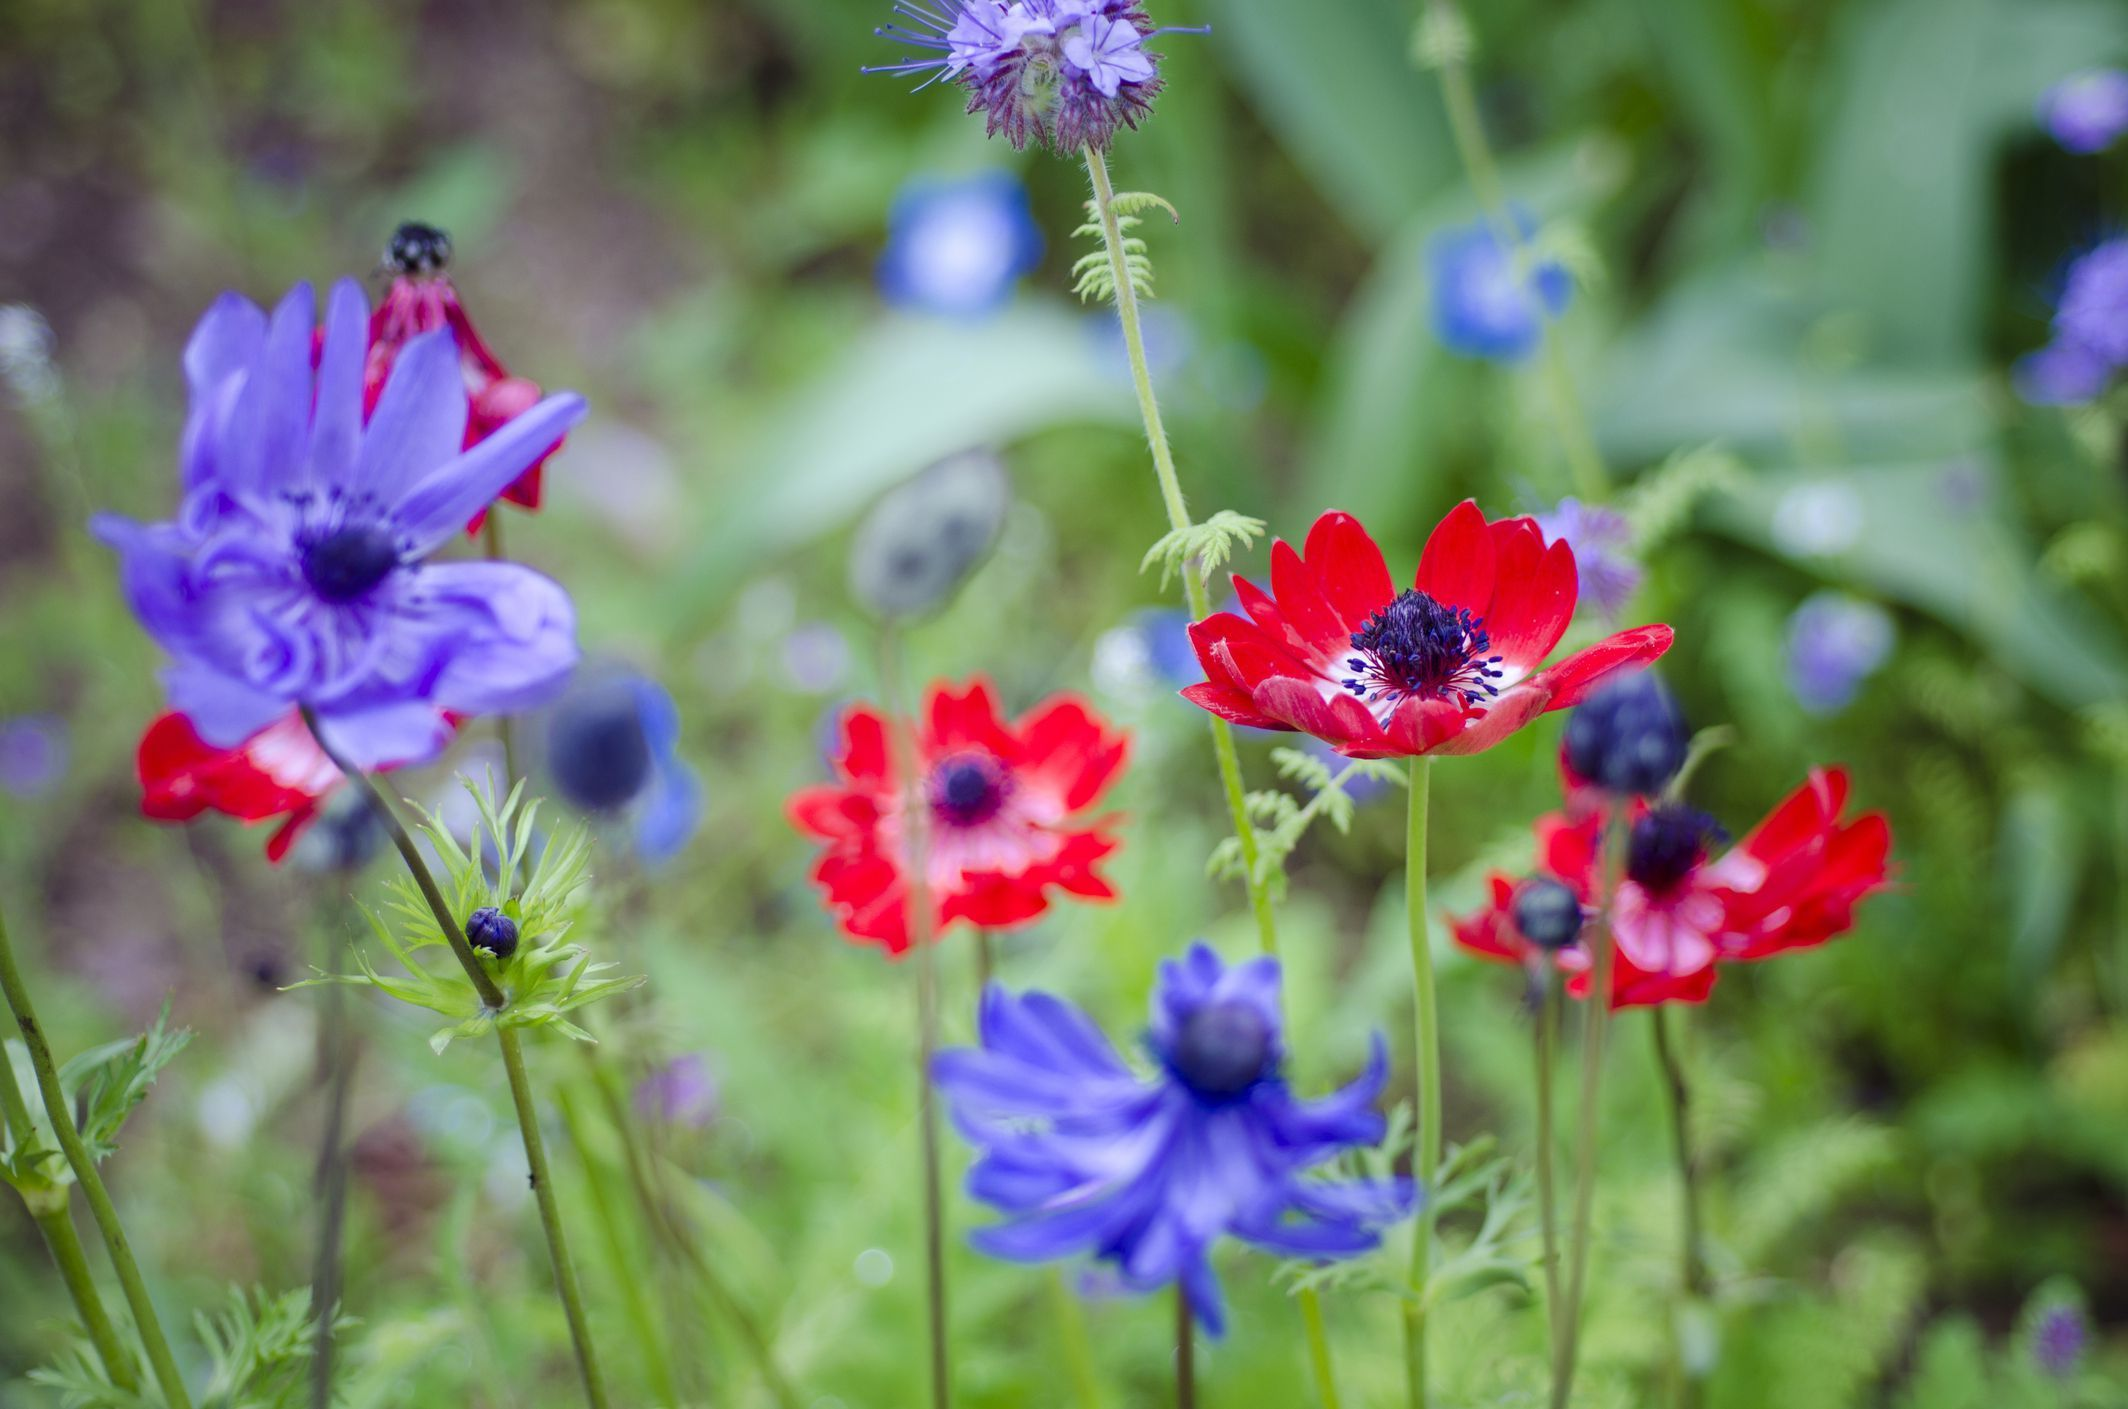 Learn How To Grow And Care For Anemone Flowers Anemone Flower Bulb Flowers Anemone